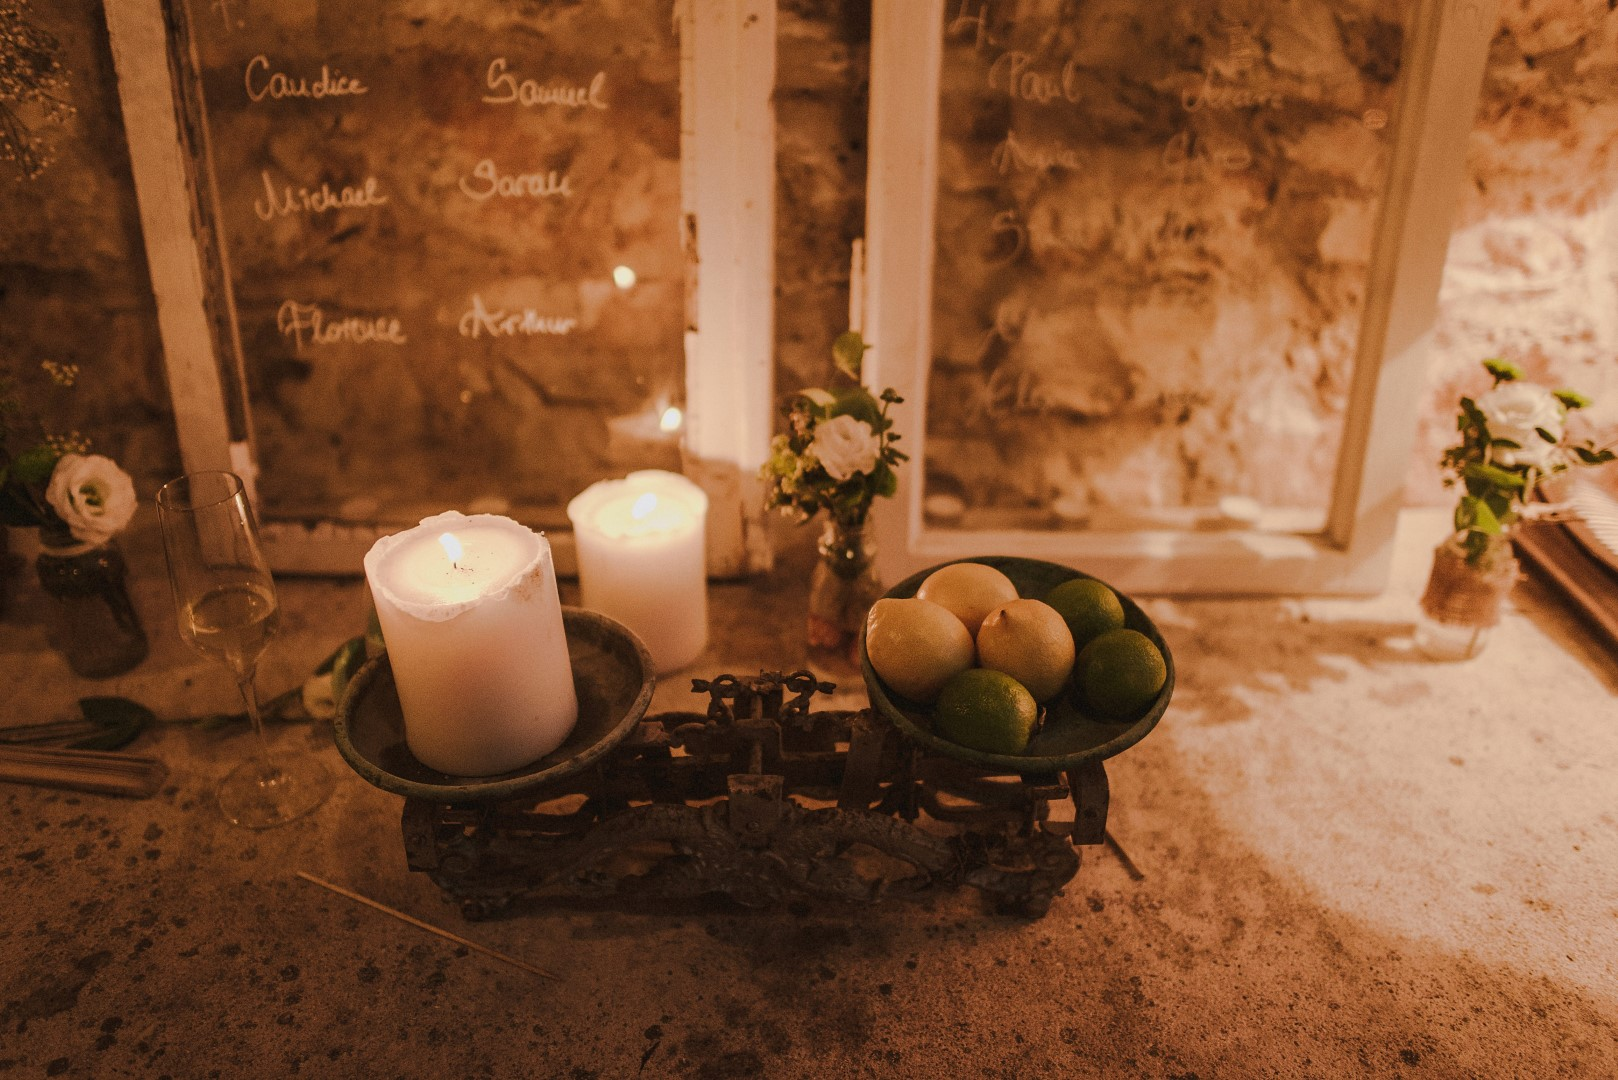 This is a photo of some details from the wedding reception. It is now dark so the candles have been lit. On the side of the candles are some citrus fruits and behind are two mirrors with white writing on them. These are the names of the guests.